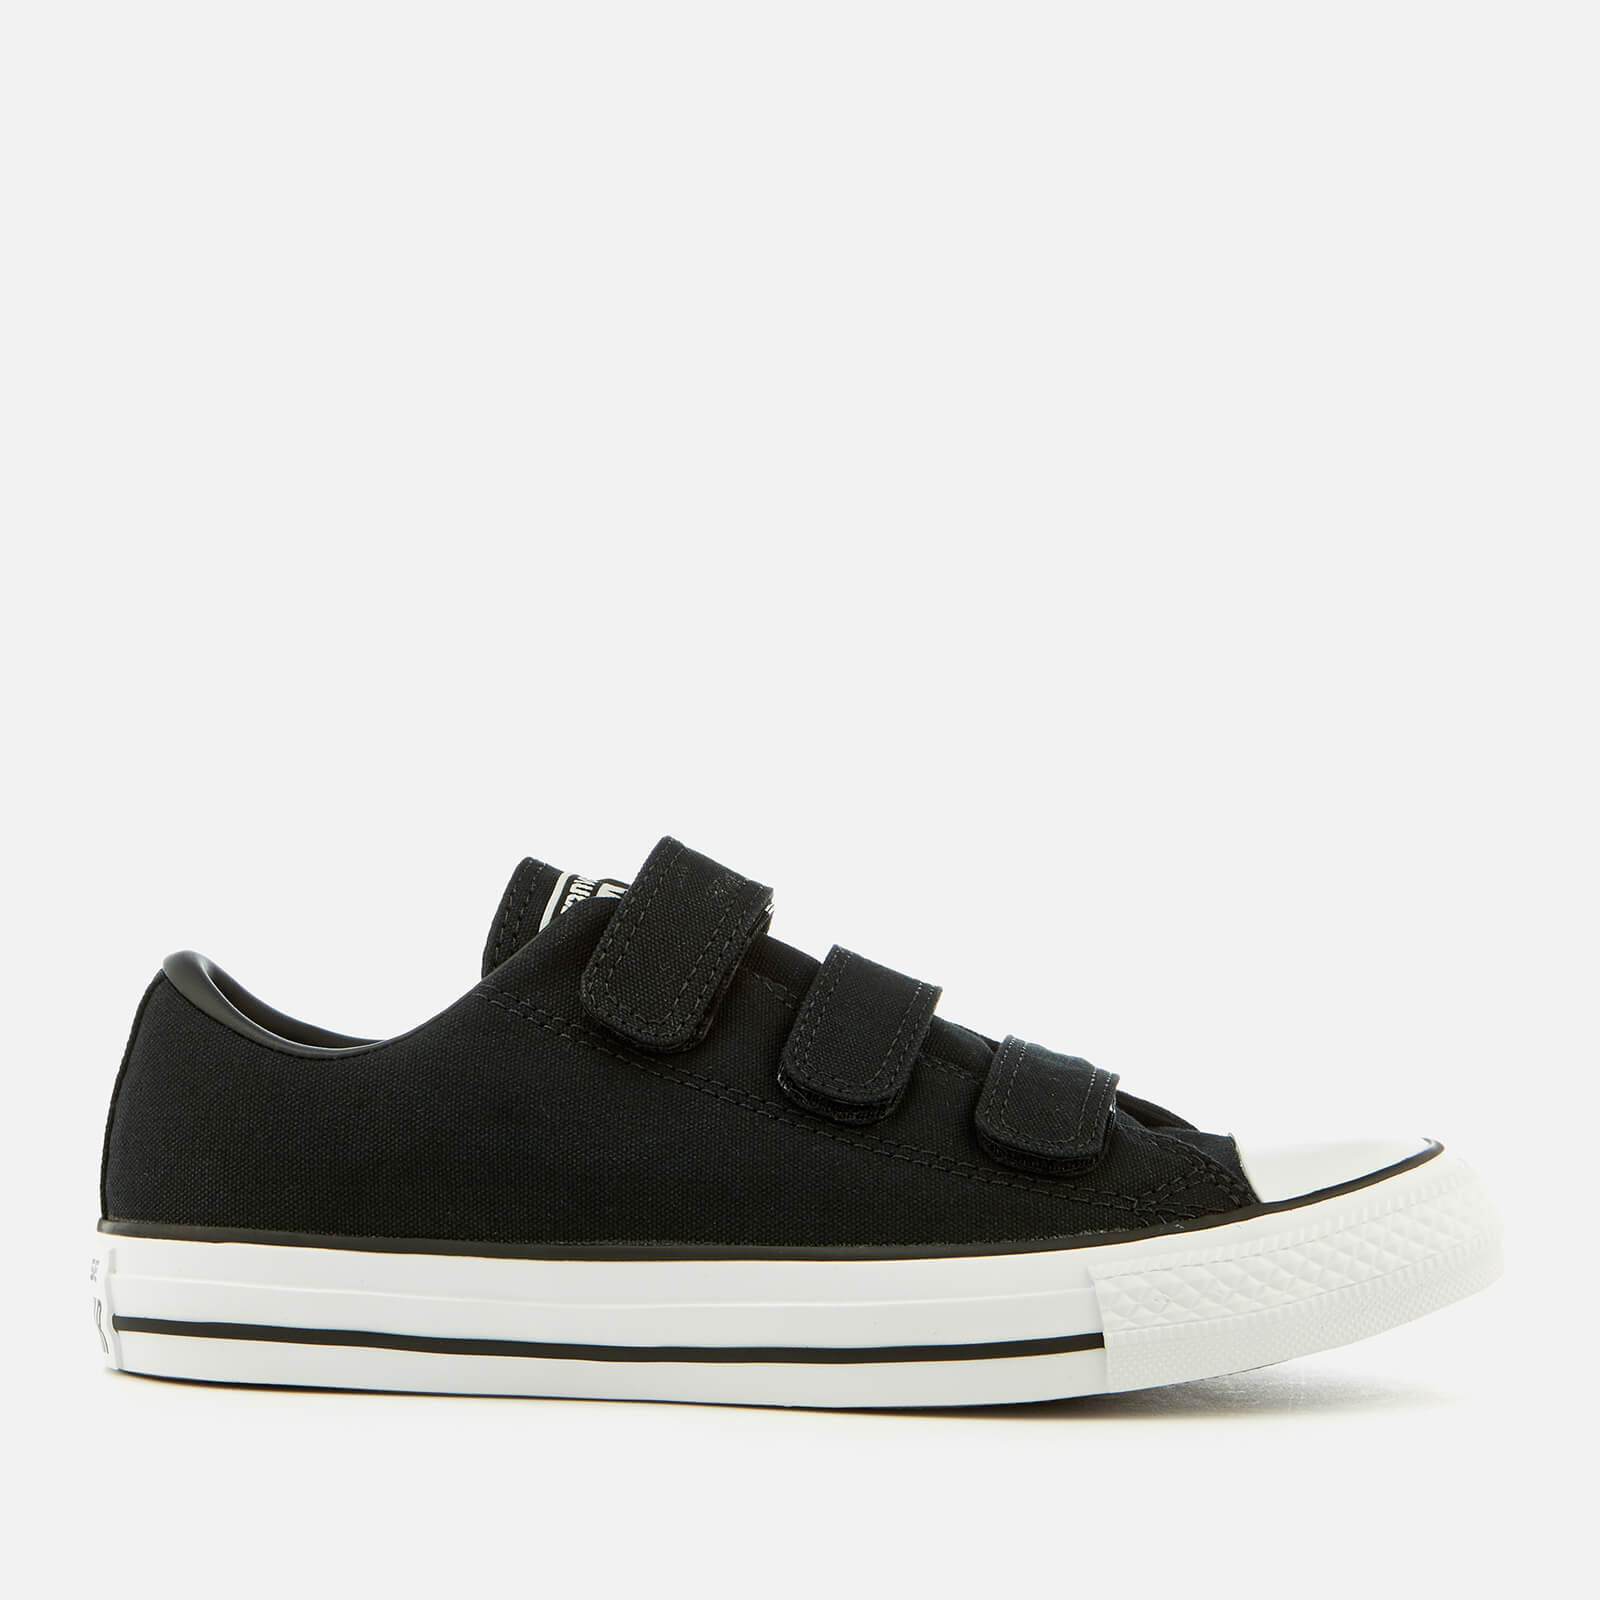 abdb2cc743910a Converse Chuck Taylor All Star 3V Ox Trainers - Black/White Mens Footwear |  TheHut.com